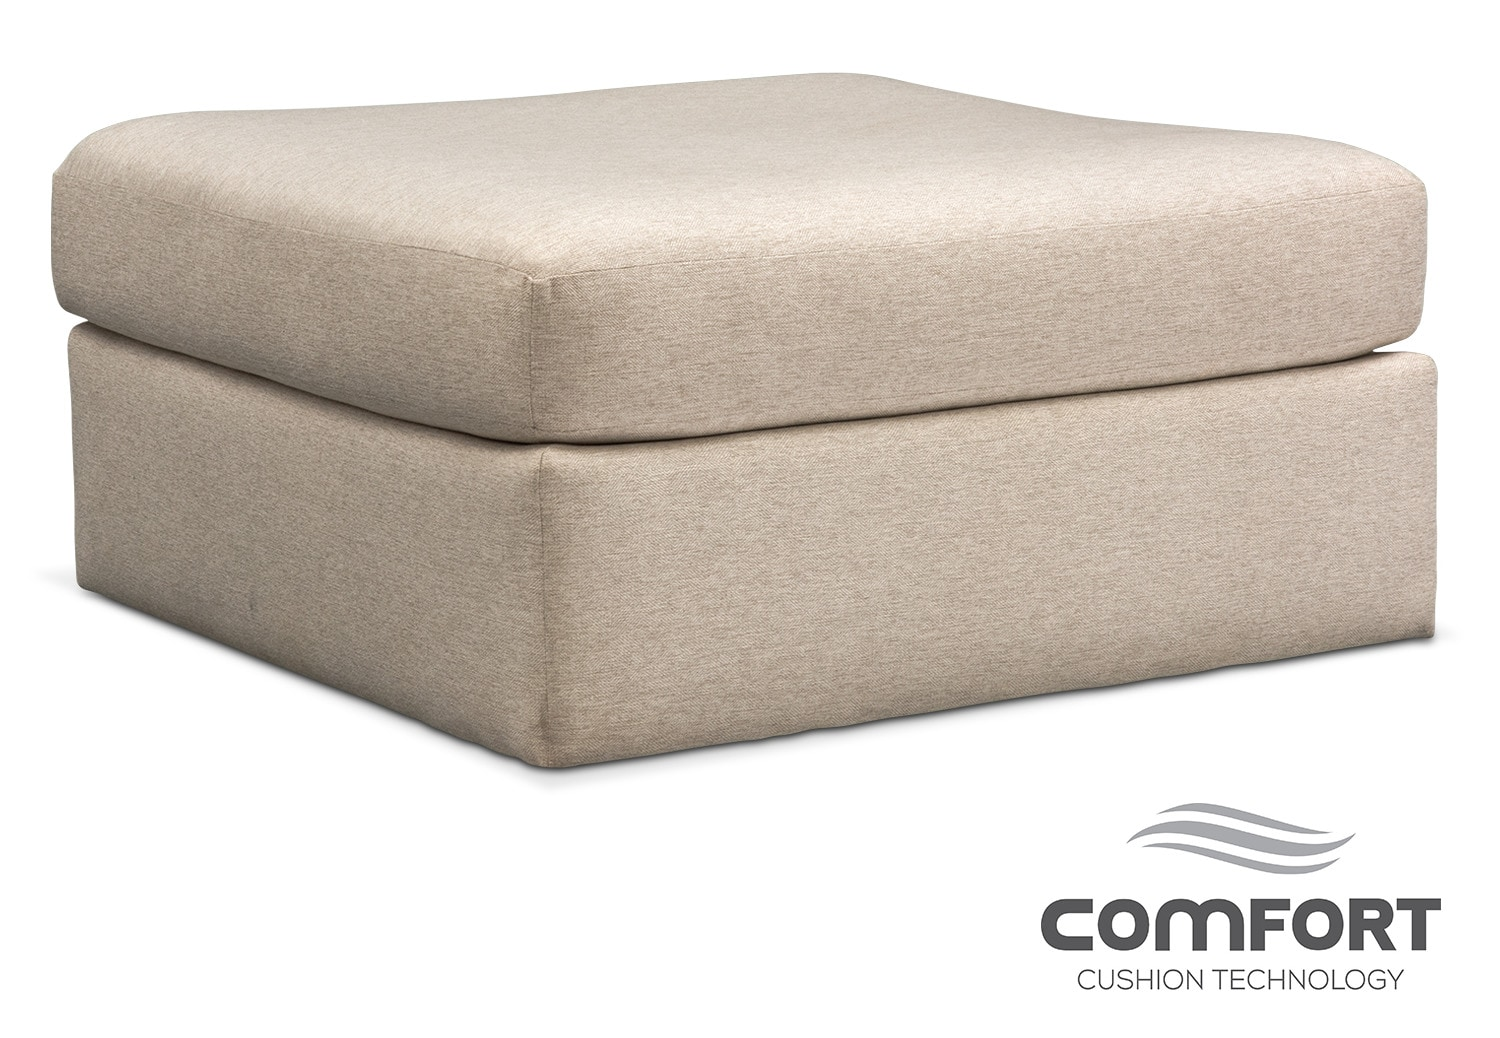 Living Room Furniture - Trenton Comfort Ottoman - Linen